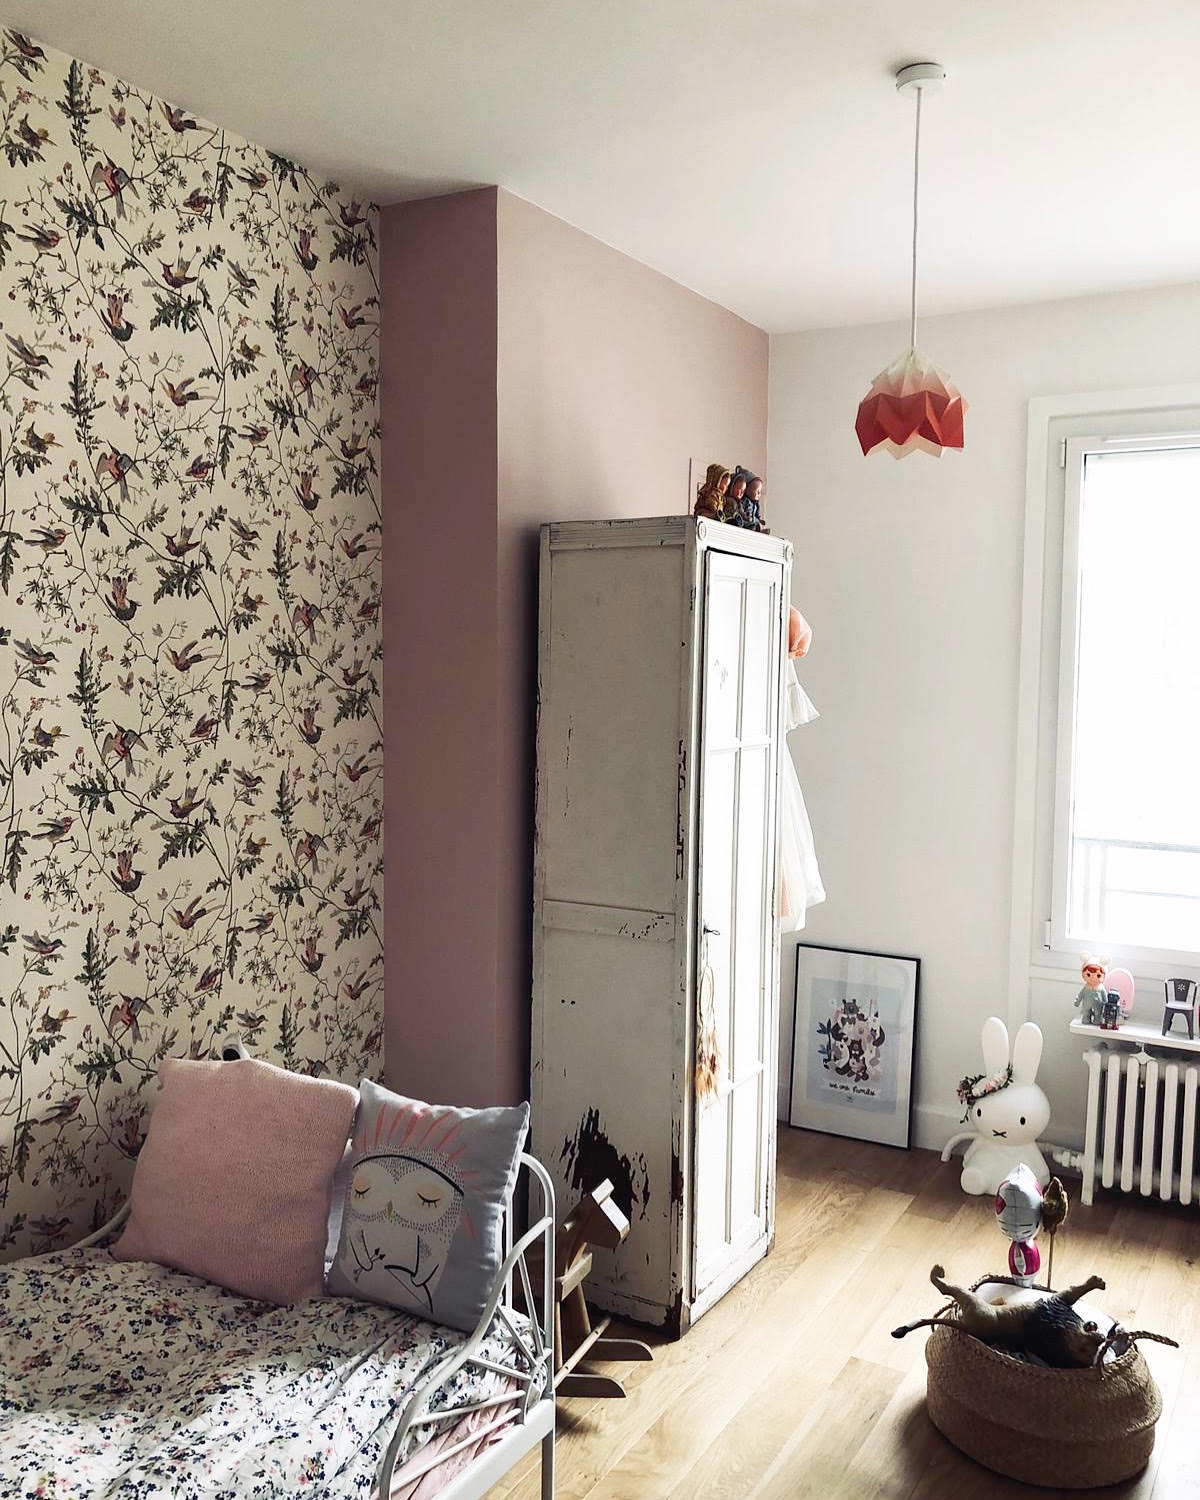 Papier peint oiseaux Hummingbirds beige de Cole and Son - @Alexandra.V - DR